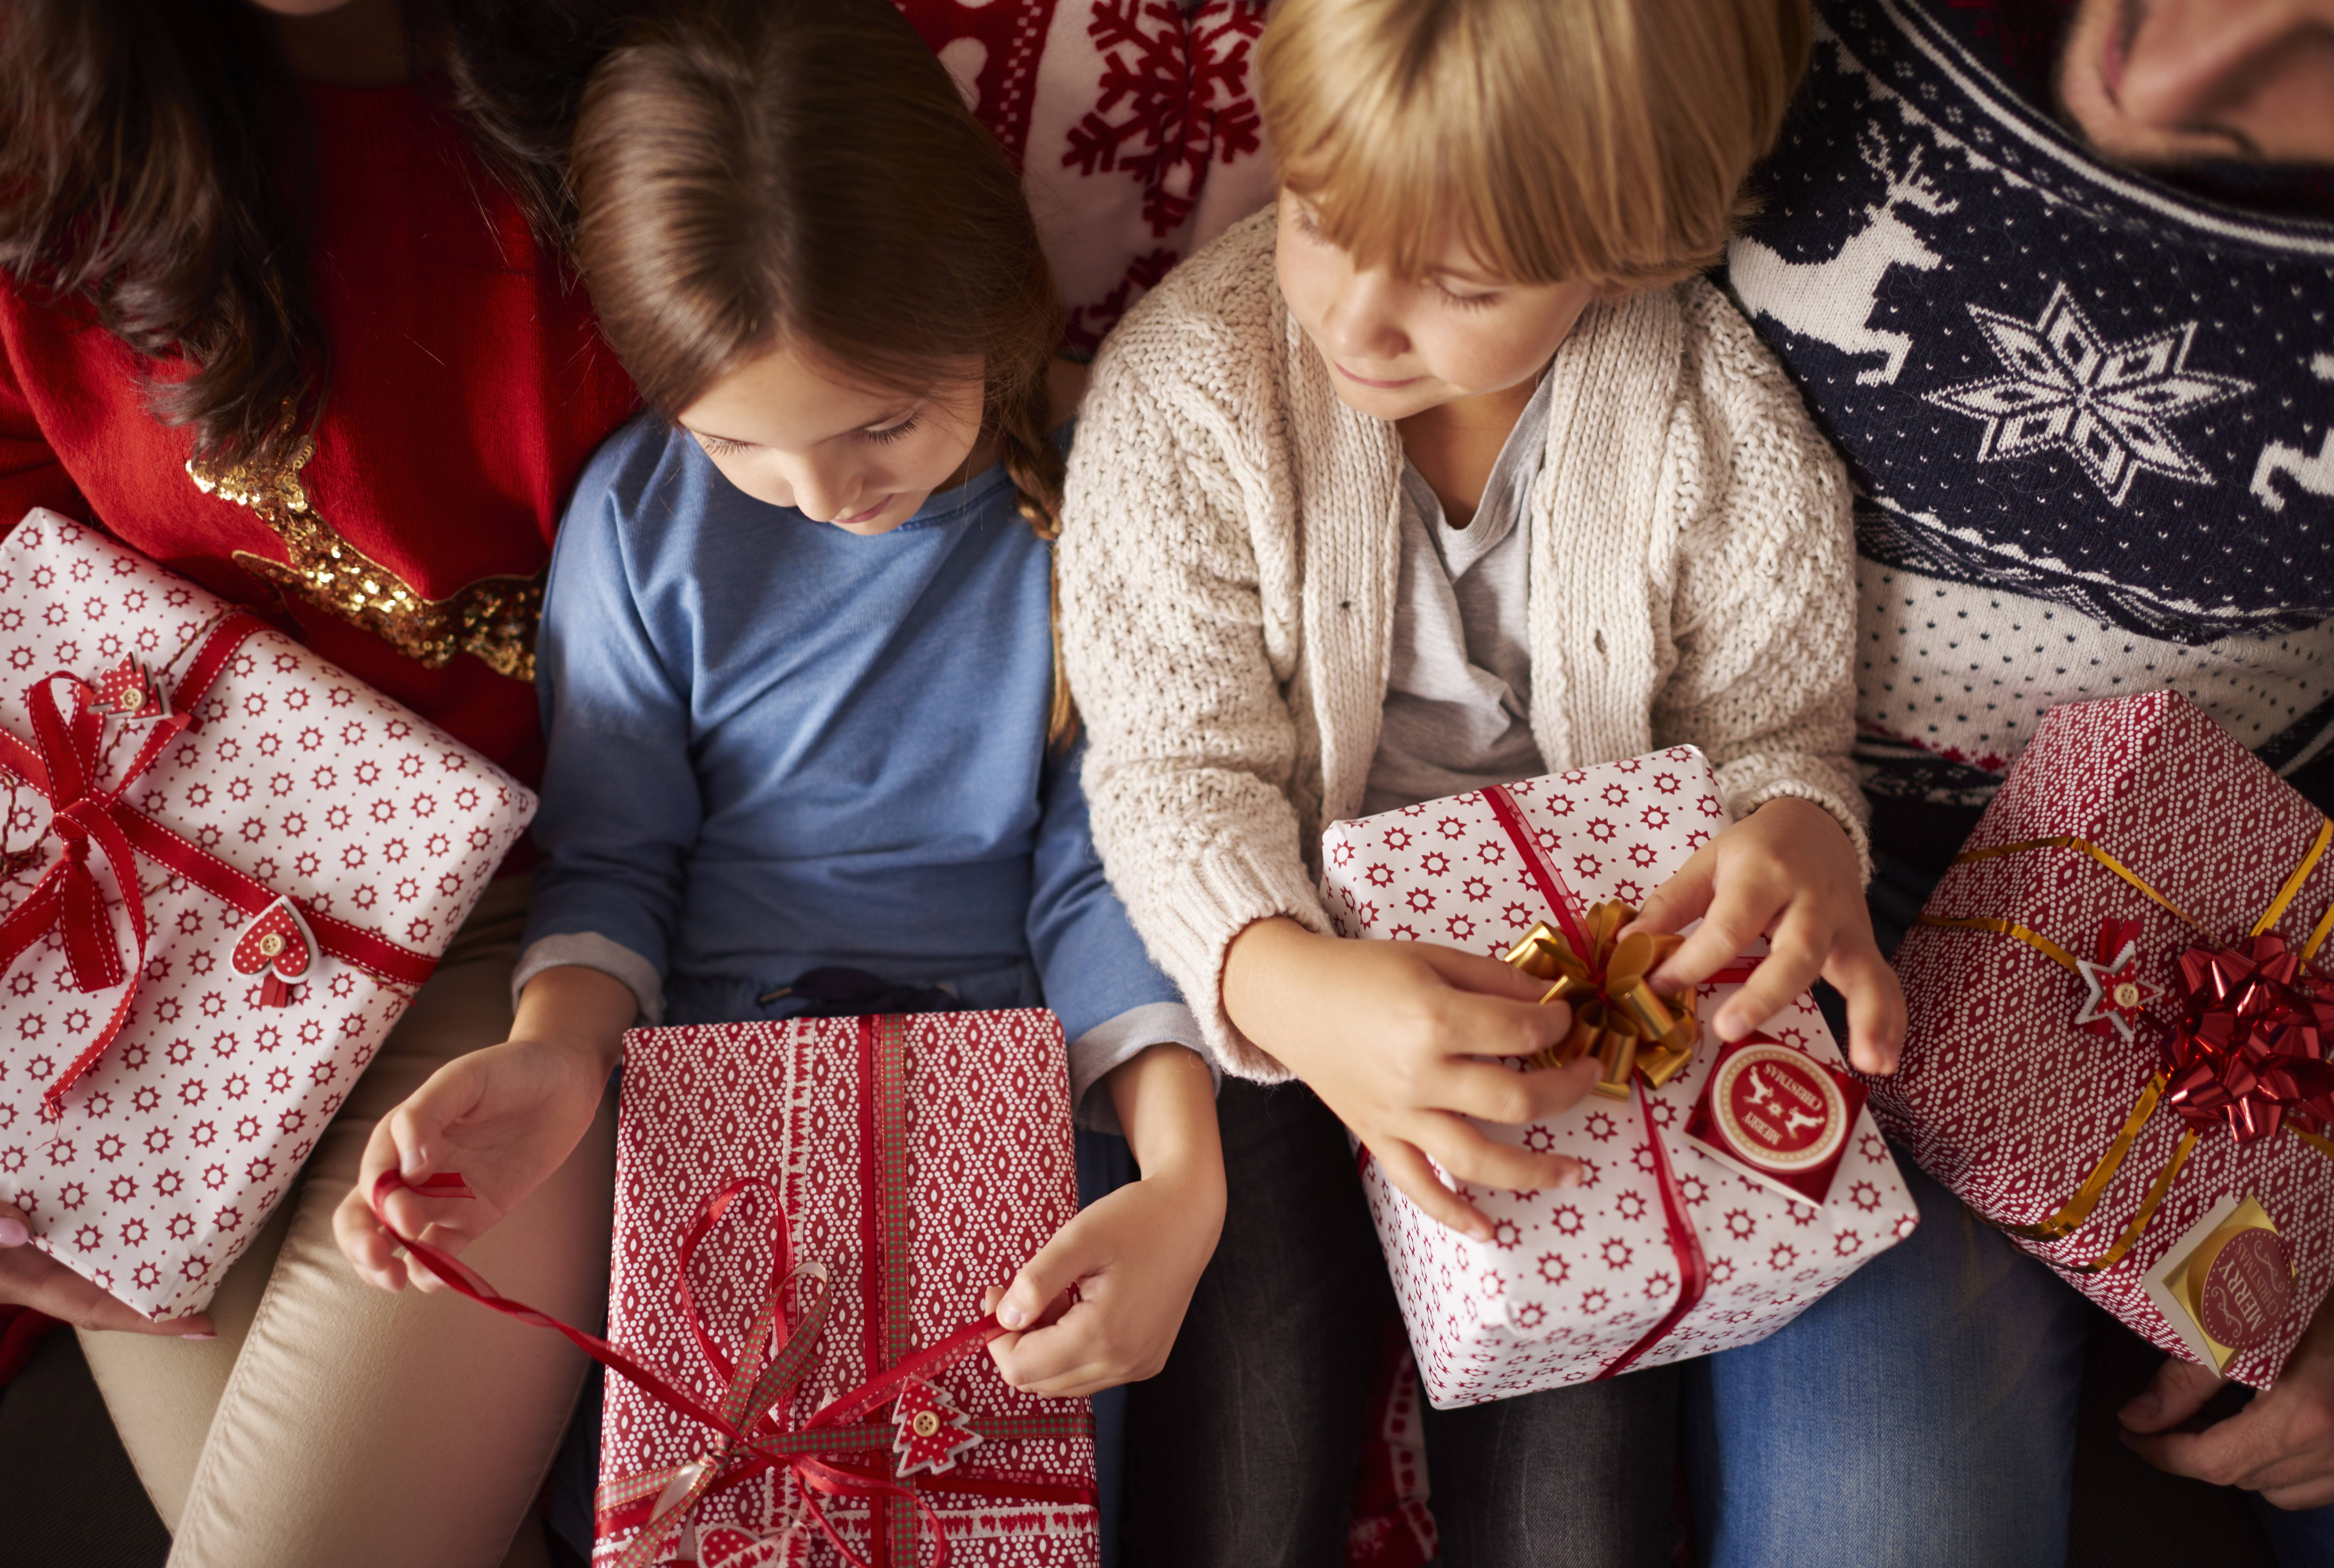 a couple of adults with children opening family Christmas presents and gifts